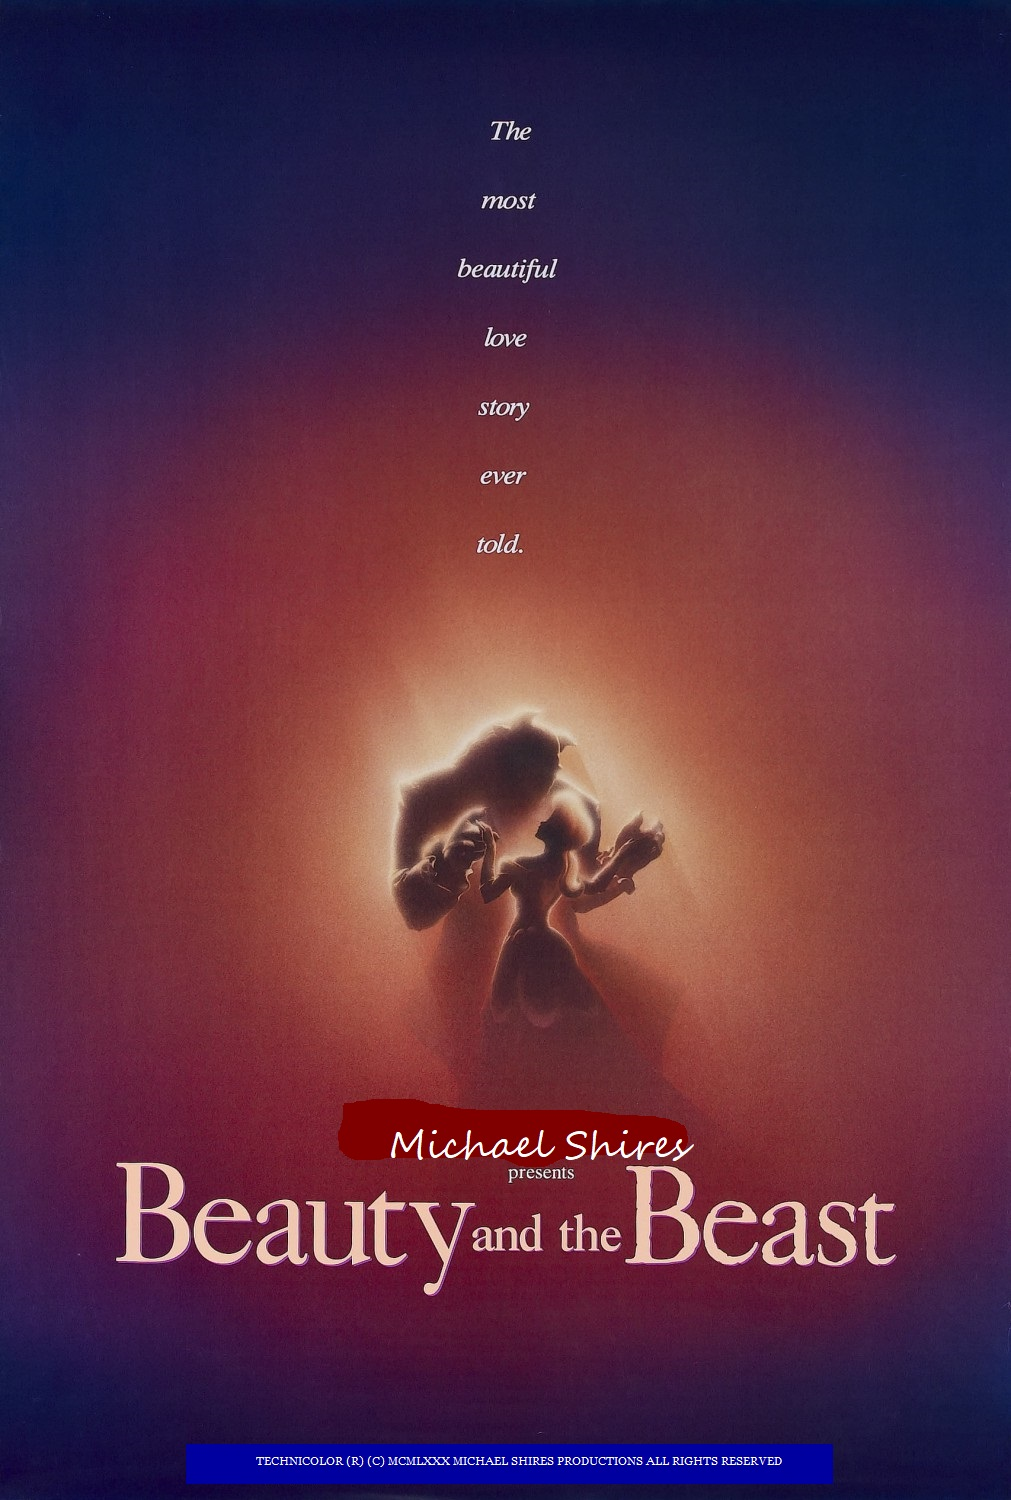 Beauty and the Beast (1980 film)